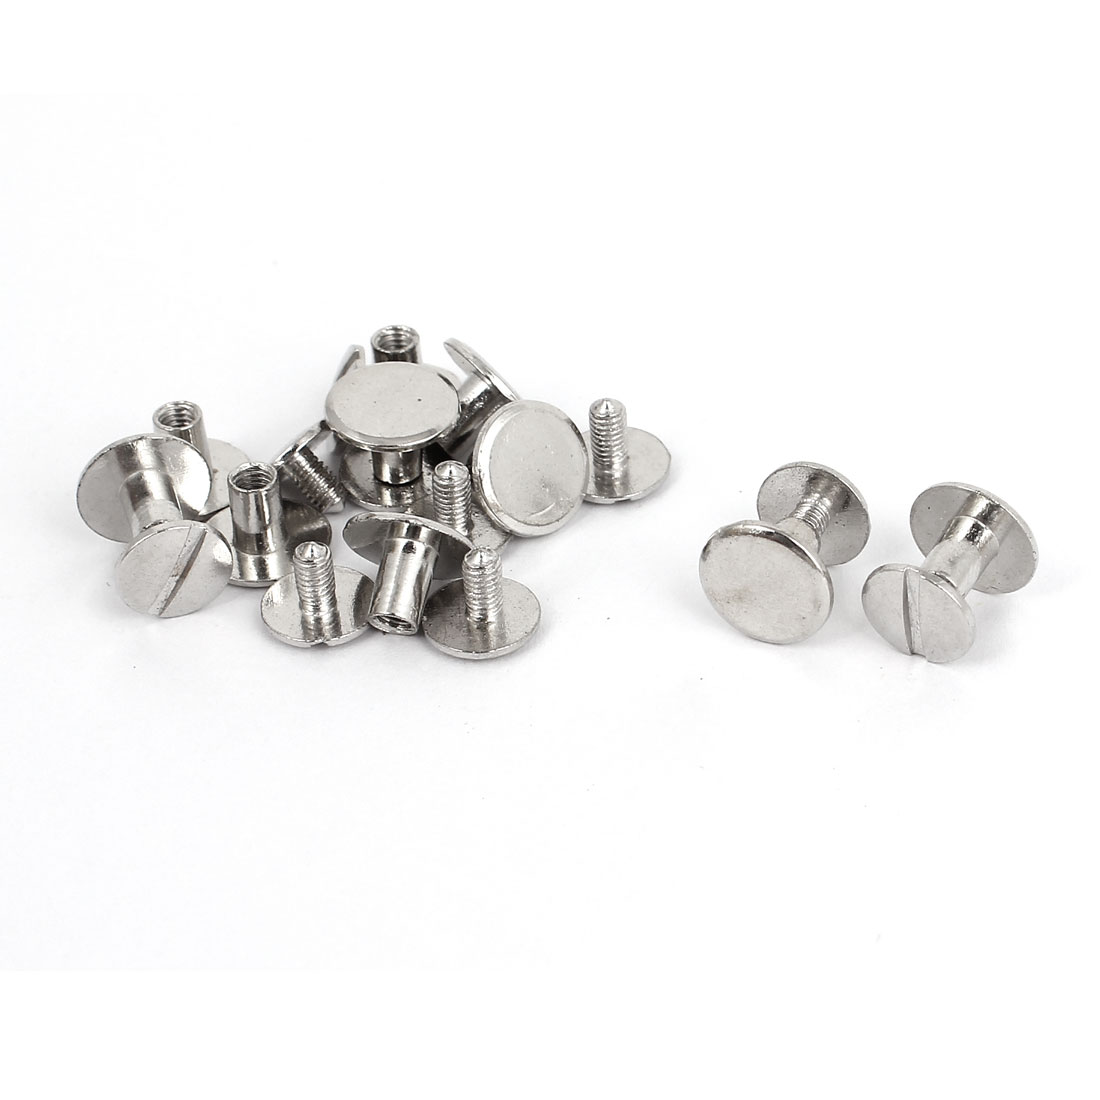 4.5mmx6.5mm Silver Plated Binding Screw Post For Leather Belt 10pcs